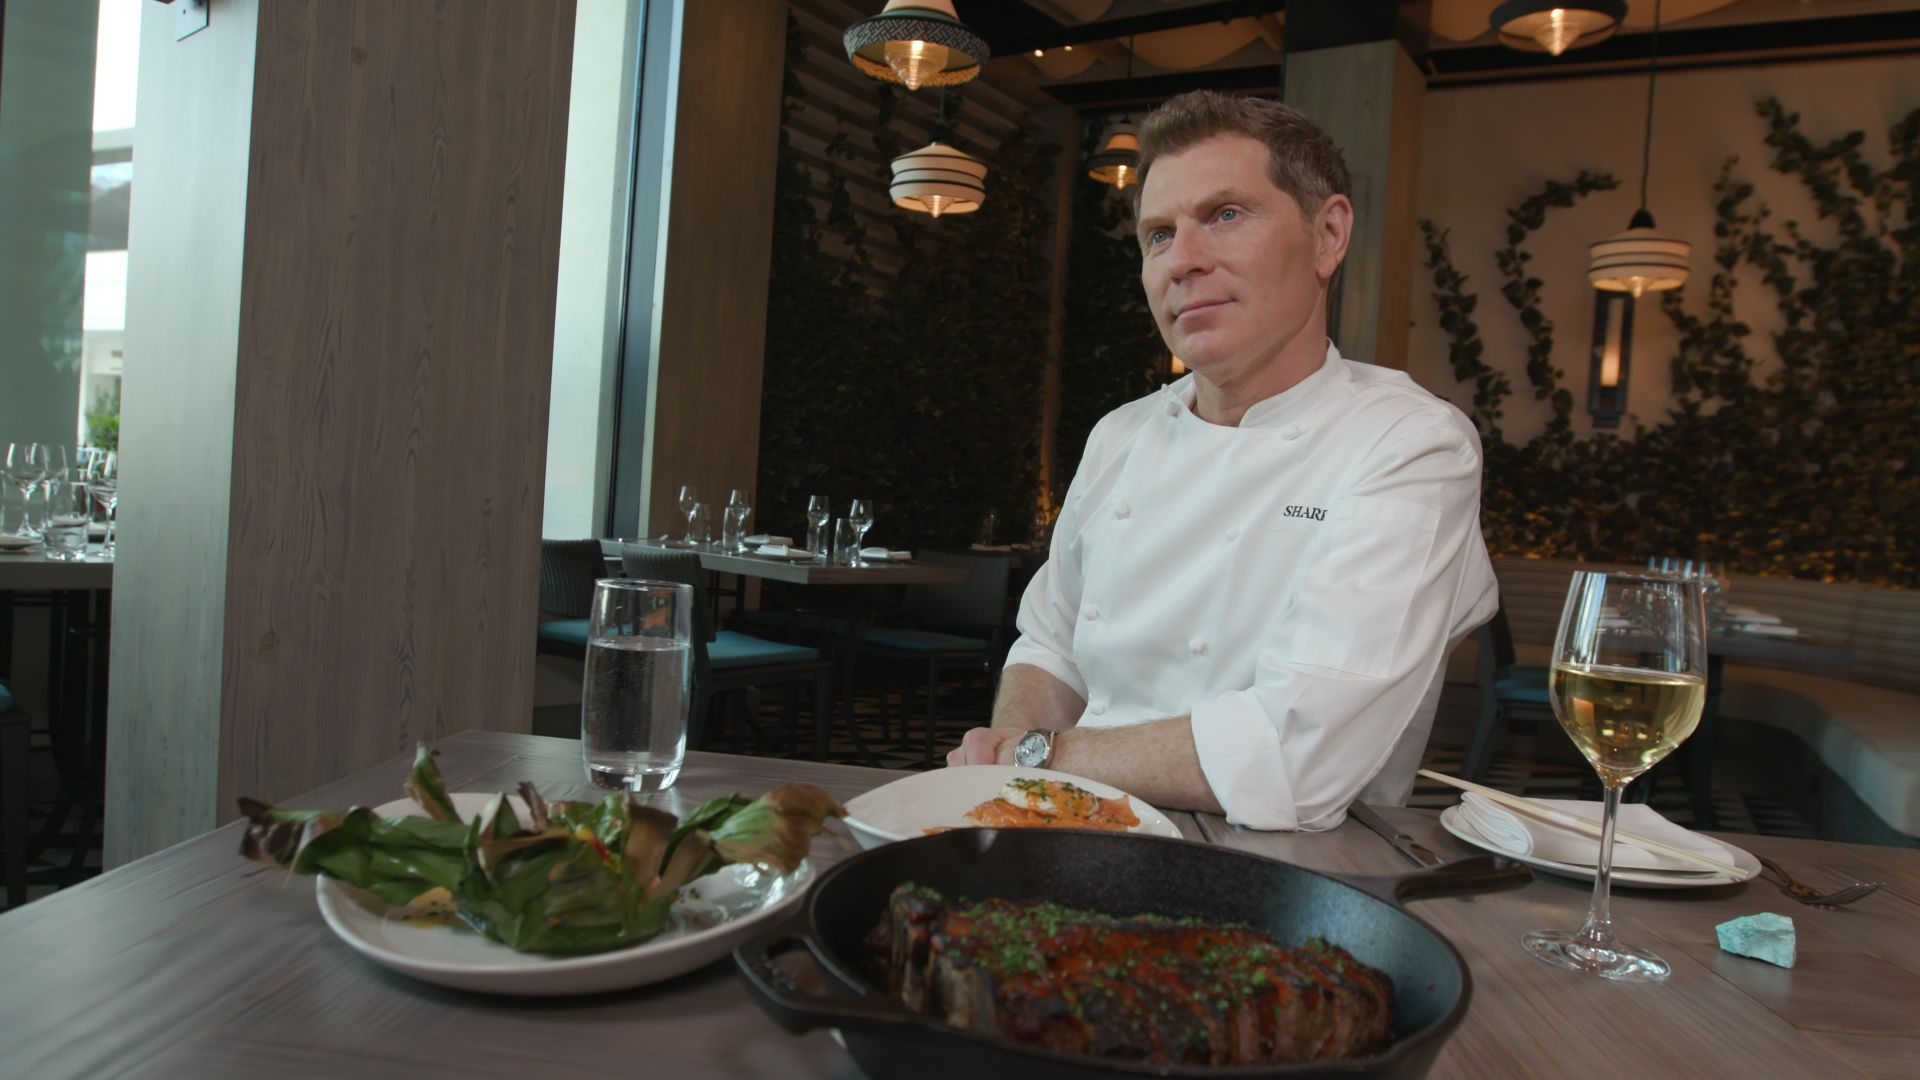 Take A Look Inside Shark, Bobby Flay's First New Restaurant In Five Years